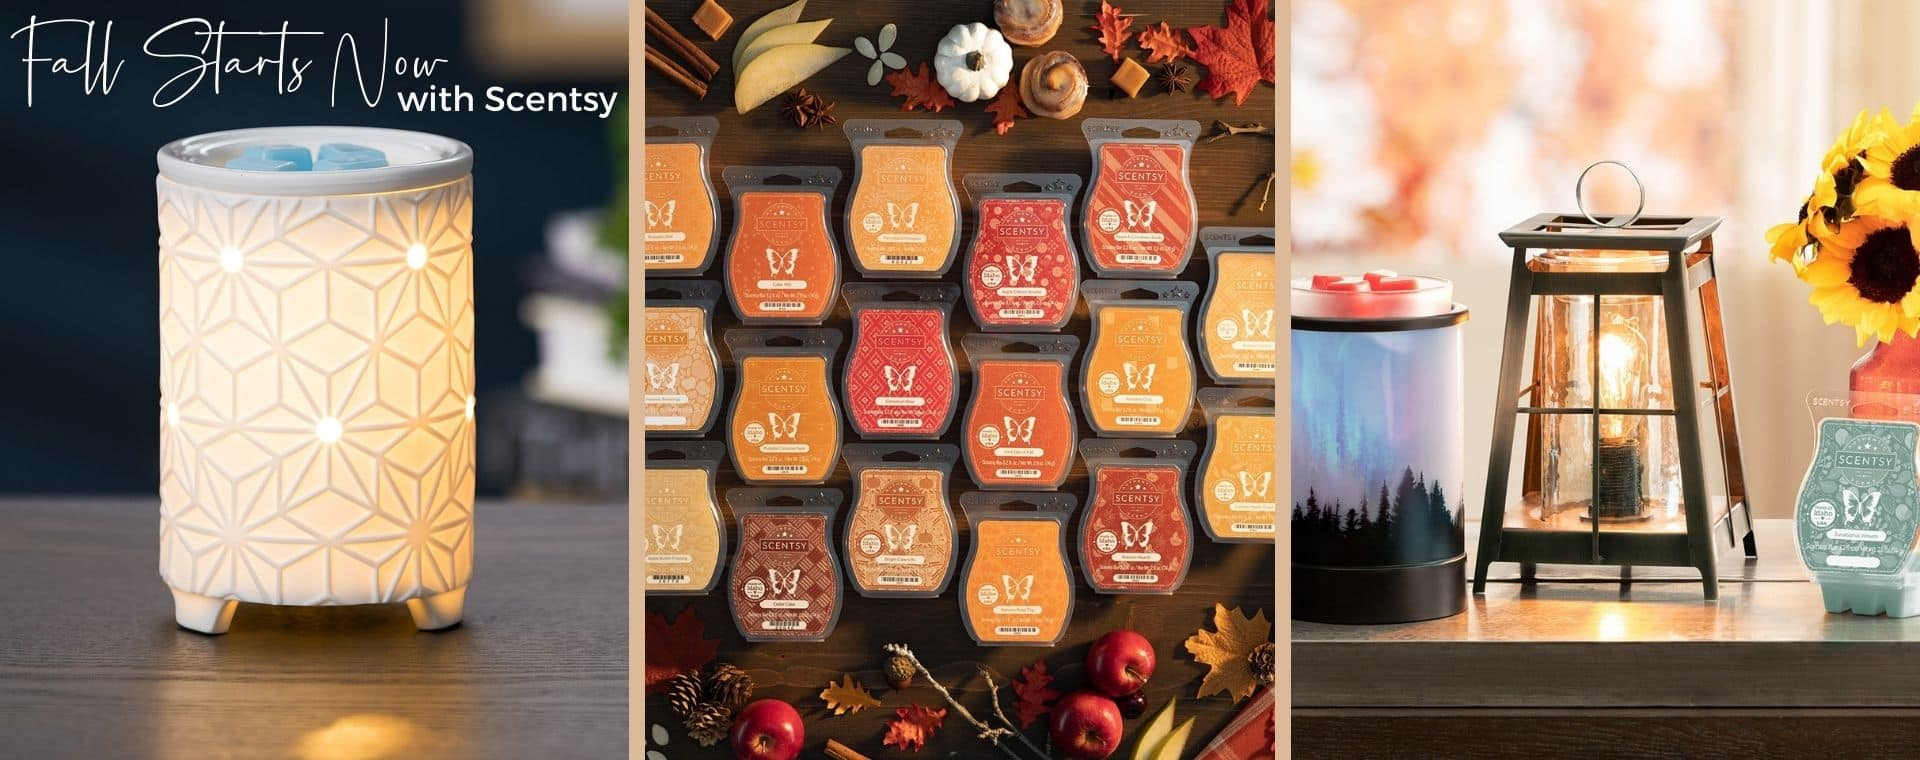 Fall Starts Now with Scentsy 2021